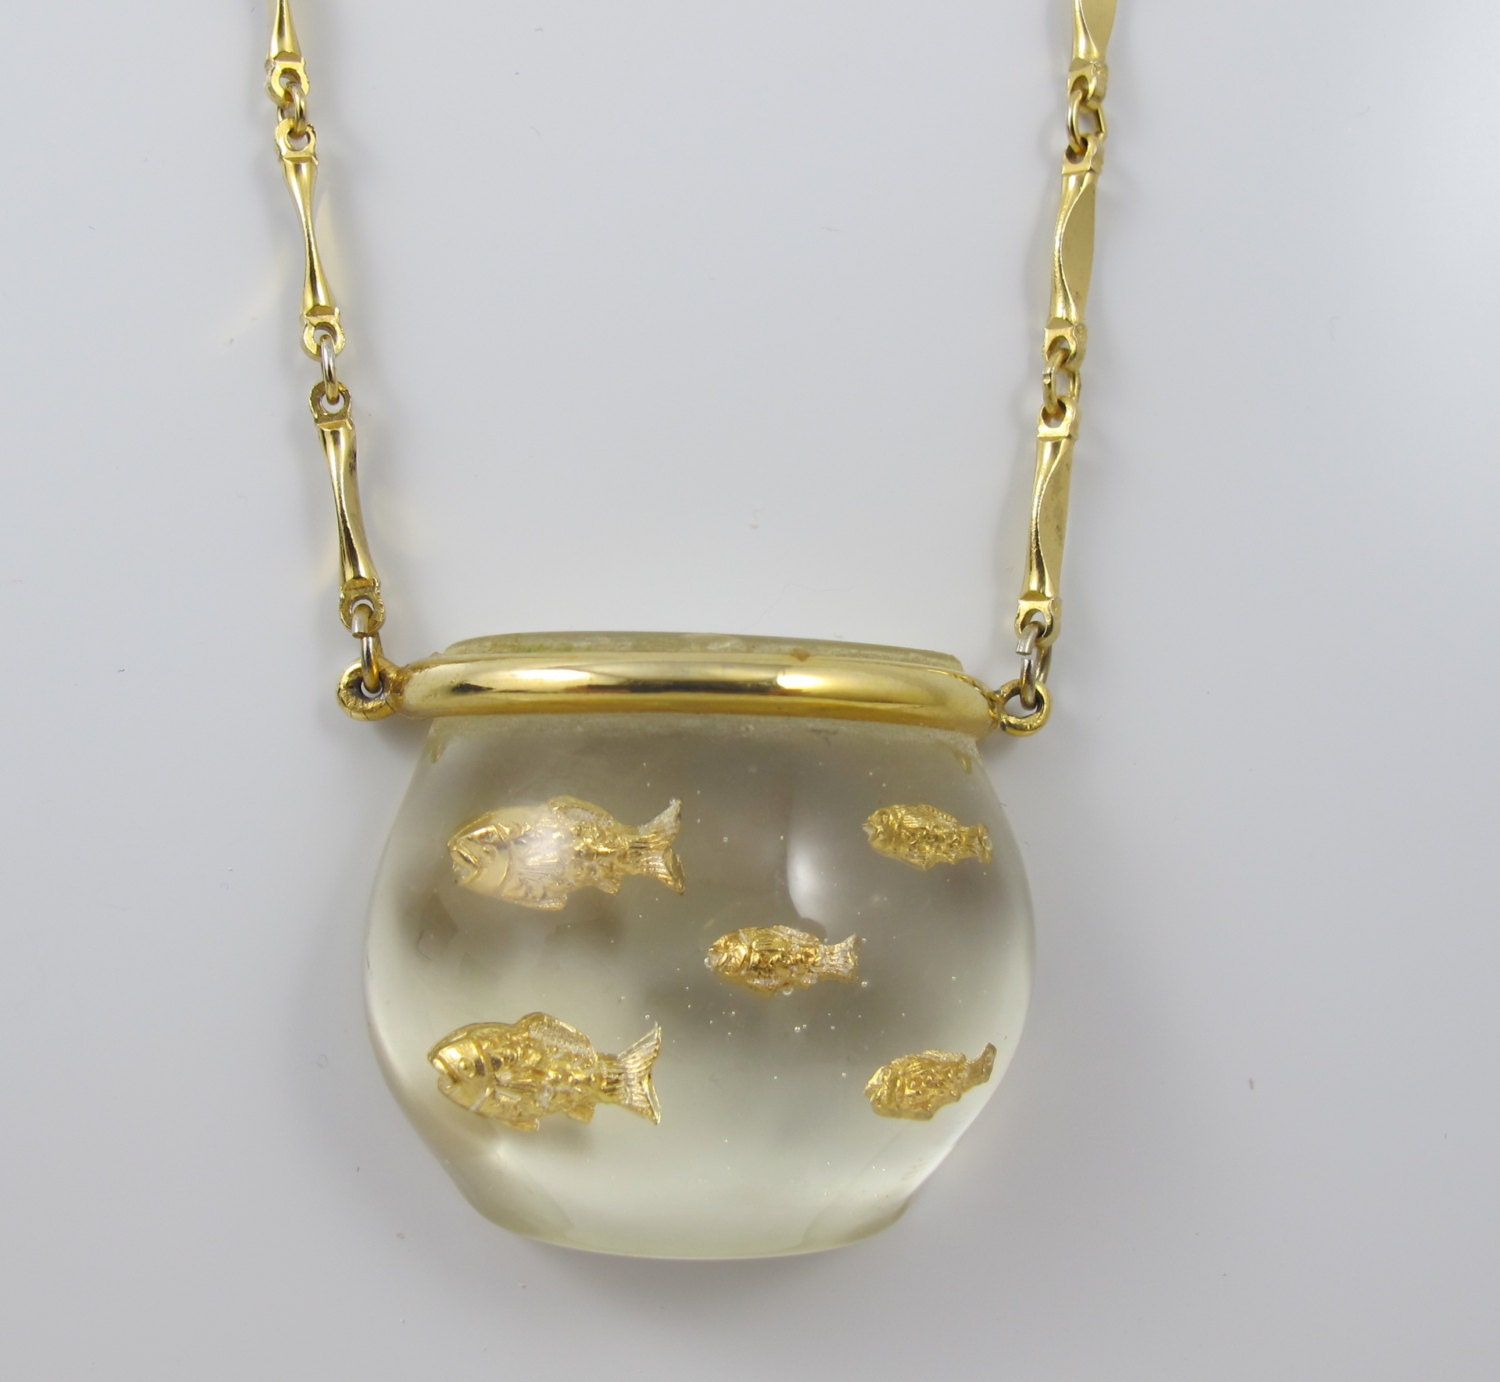 Lucite Fish Bowl Necklace Castlecliff Jelly Belly Fish Bowl